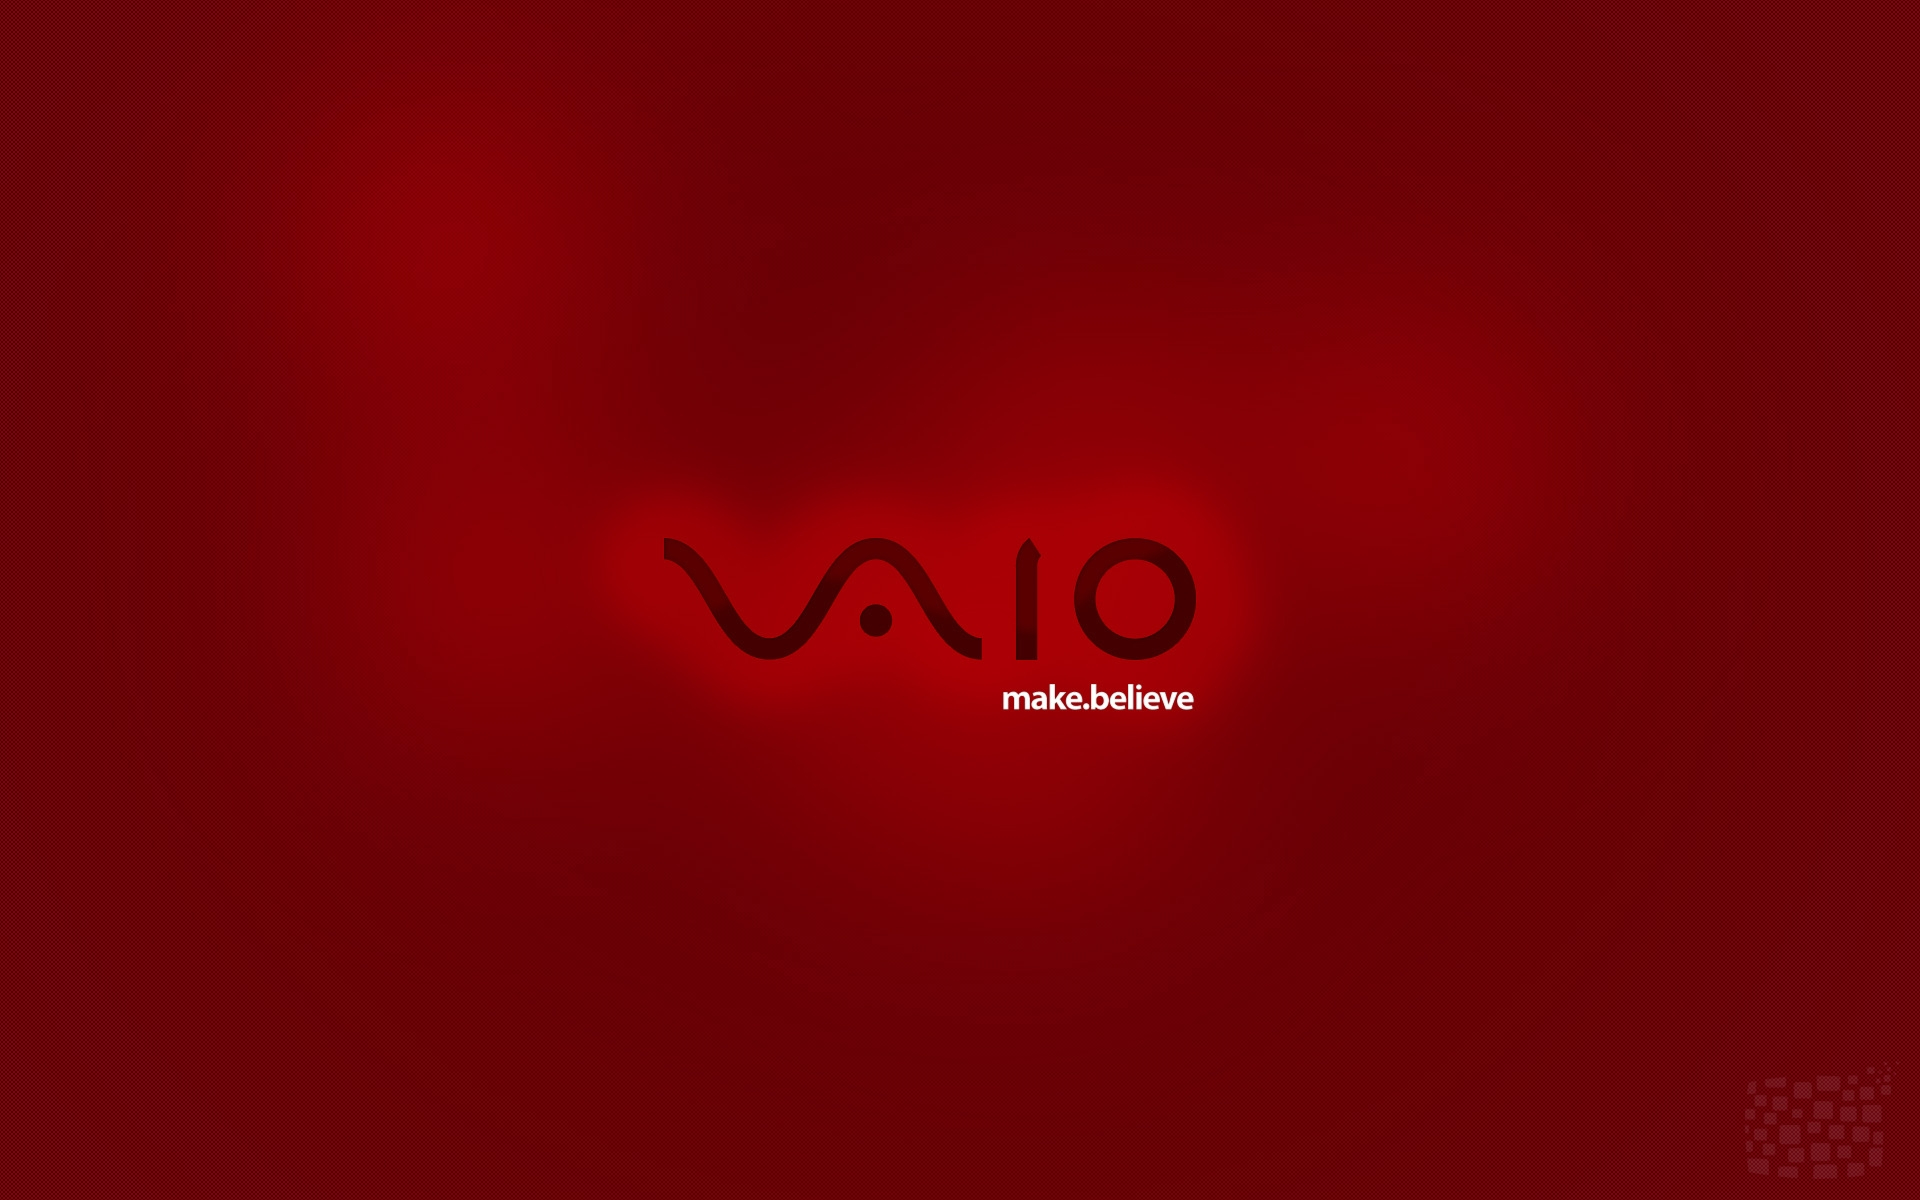 vaio red wallpaper by - photo #18